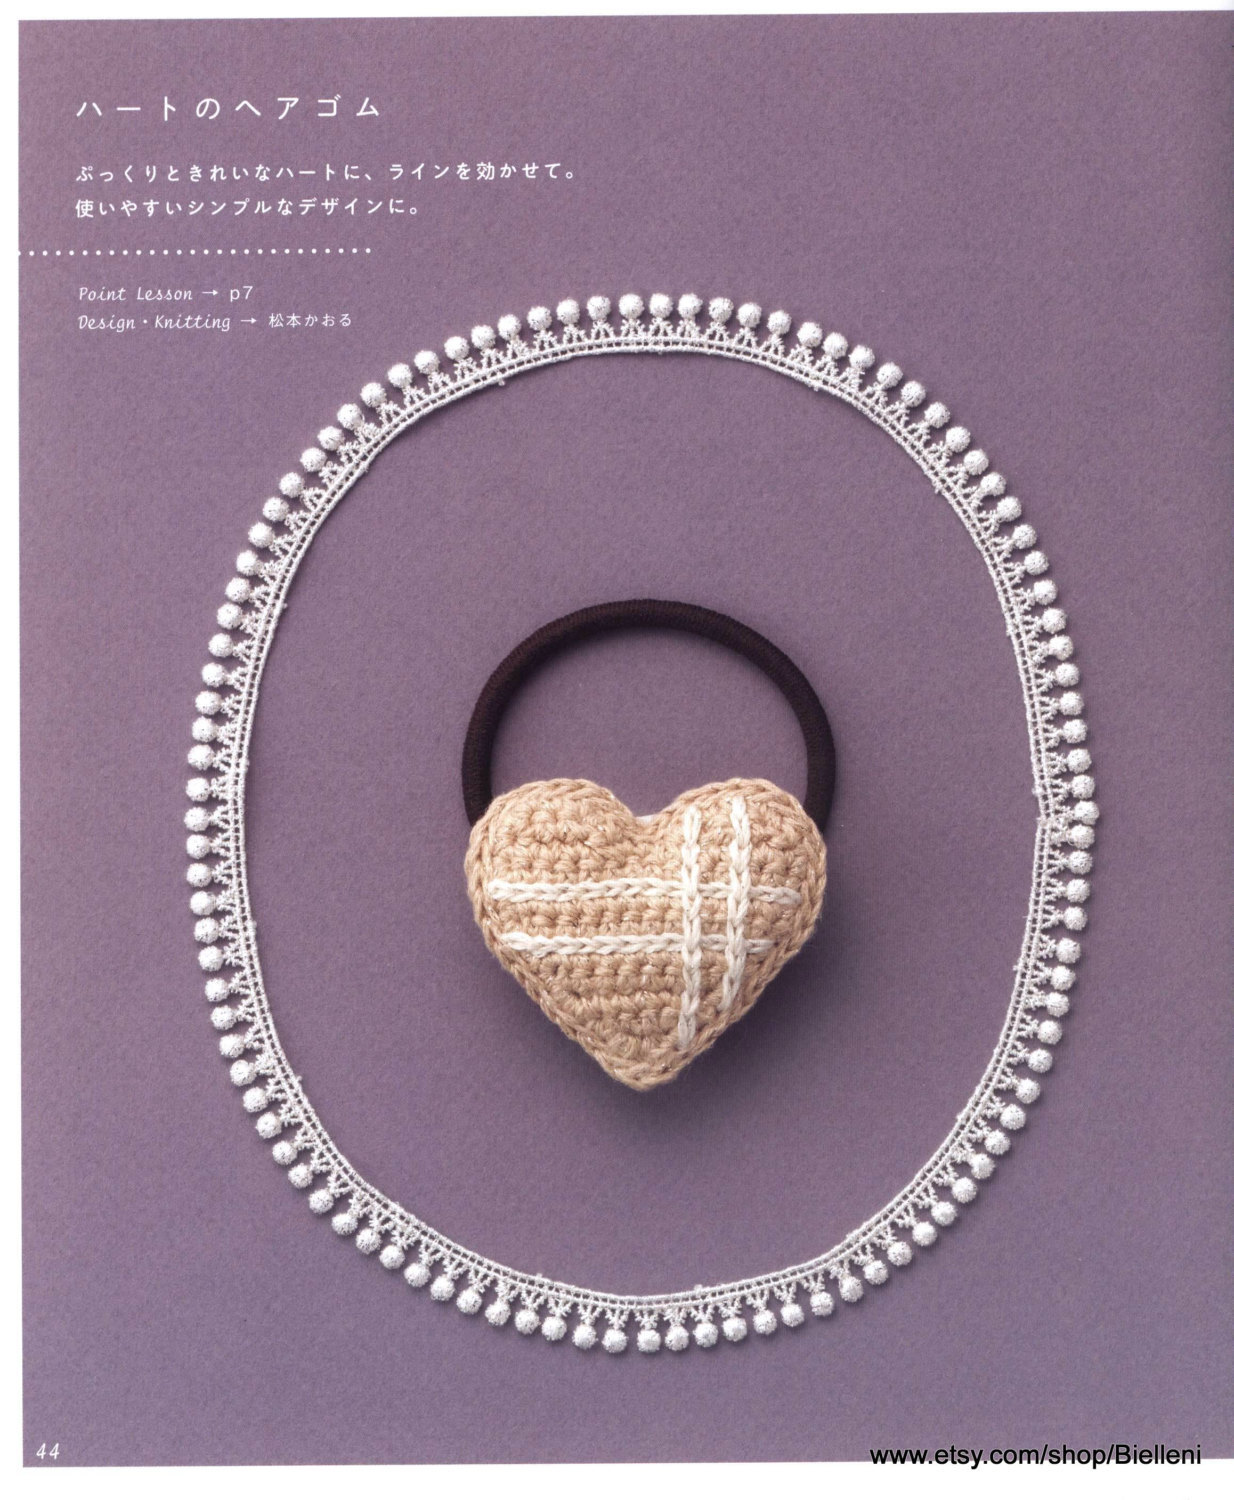 Crochet Hair Accessories Patterns : Crochet Hair Accessories Japanese eBook Pattern (CRO10), Crochet ...